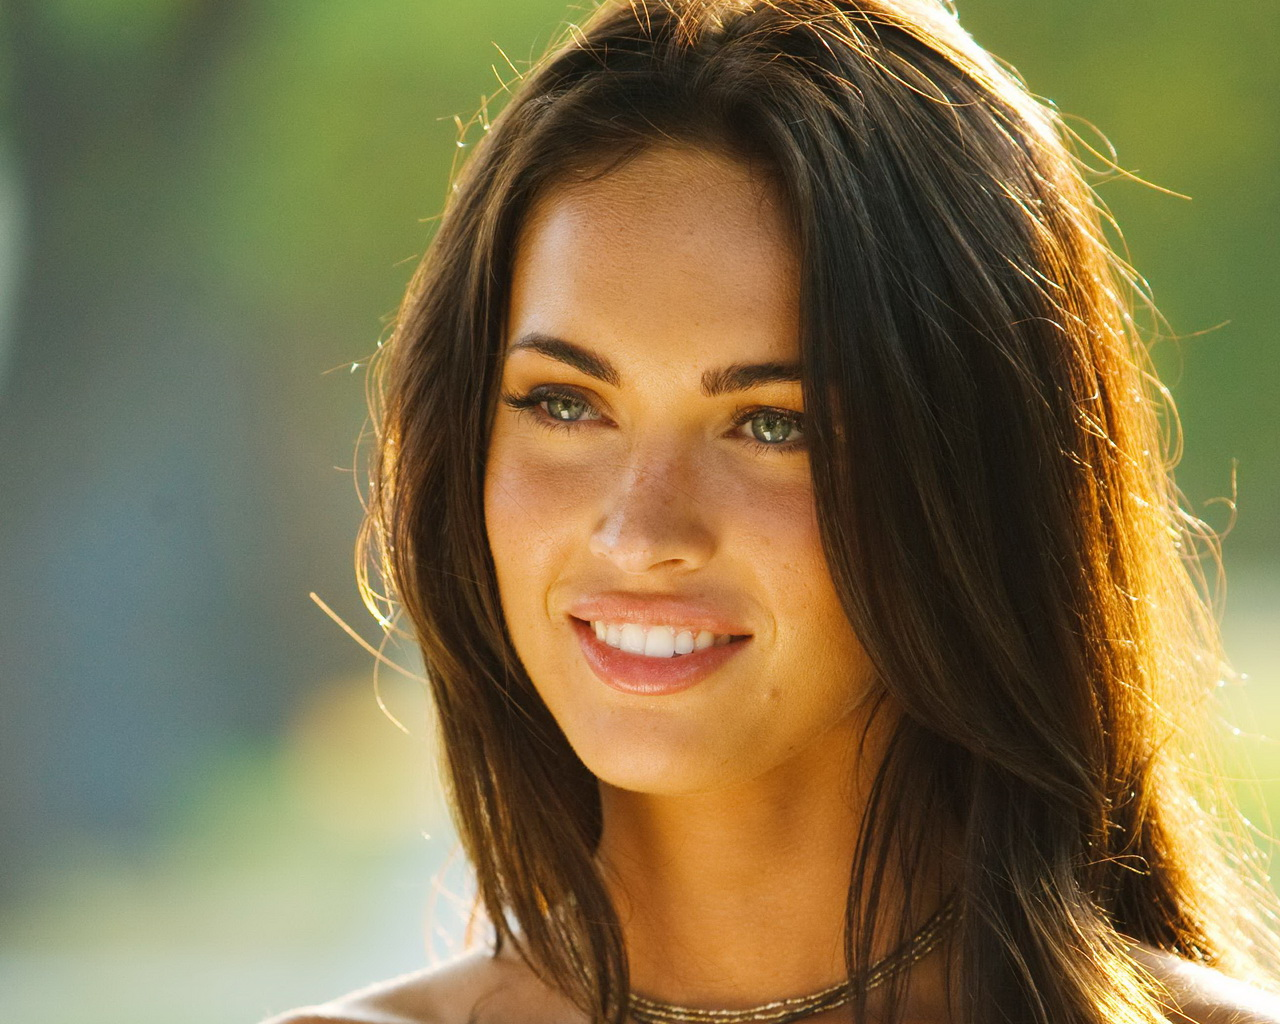 Hollywood models wallpapers megan fox spicy model - Fille brune au yeux bleu ...